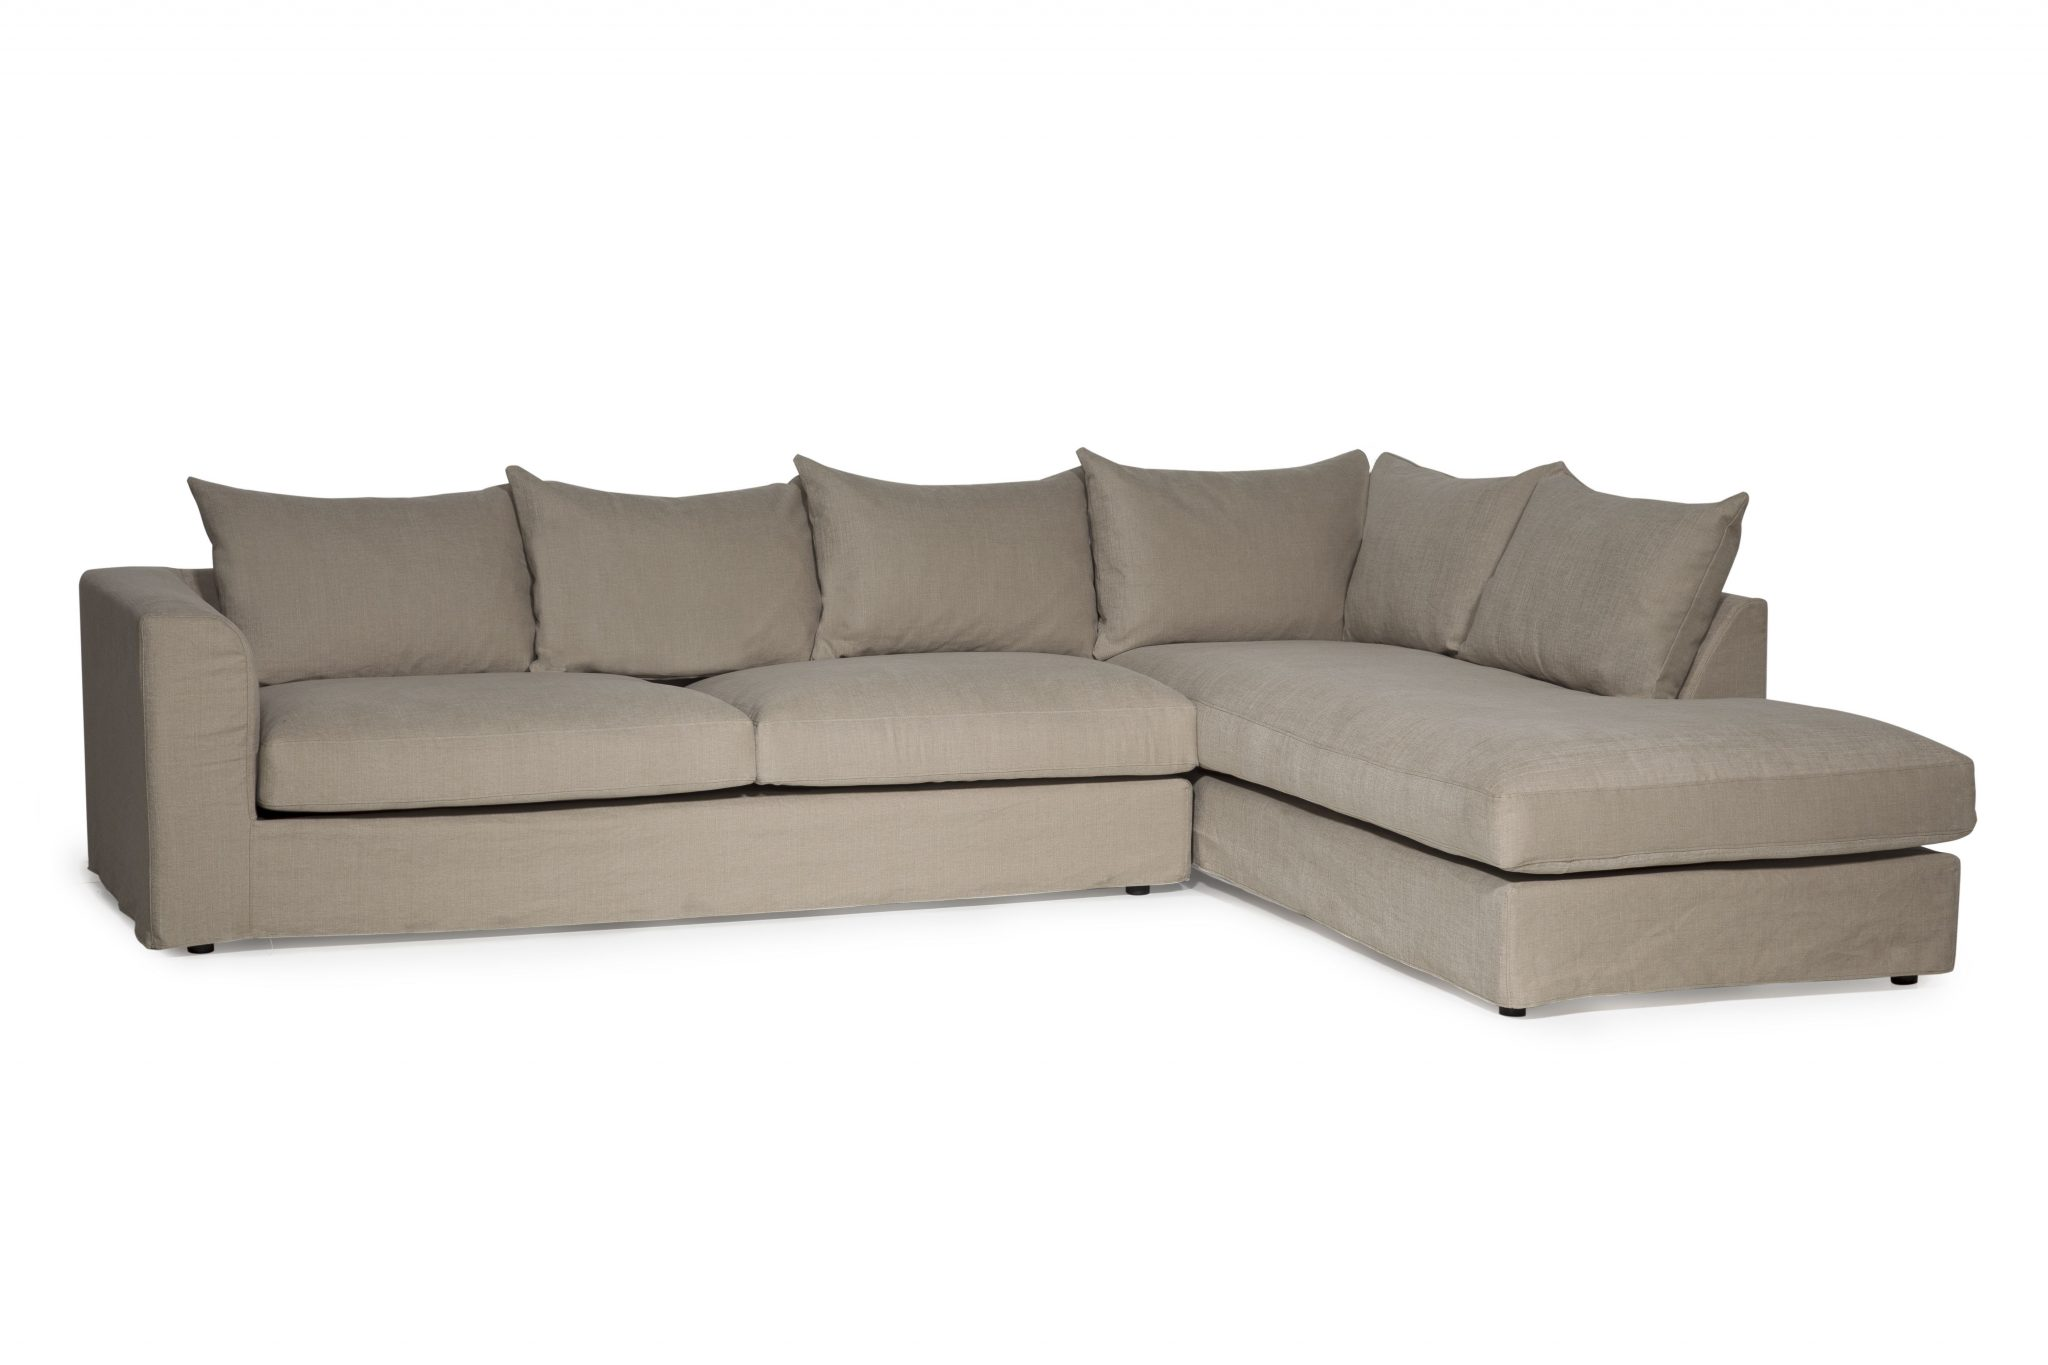 portland sofa scs portland 4 seater ter back sofa in blyth